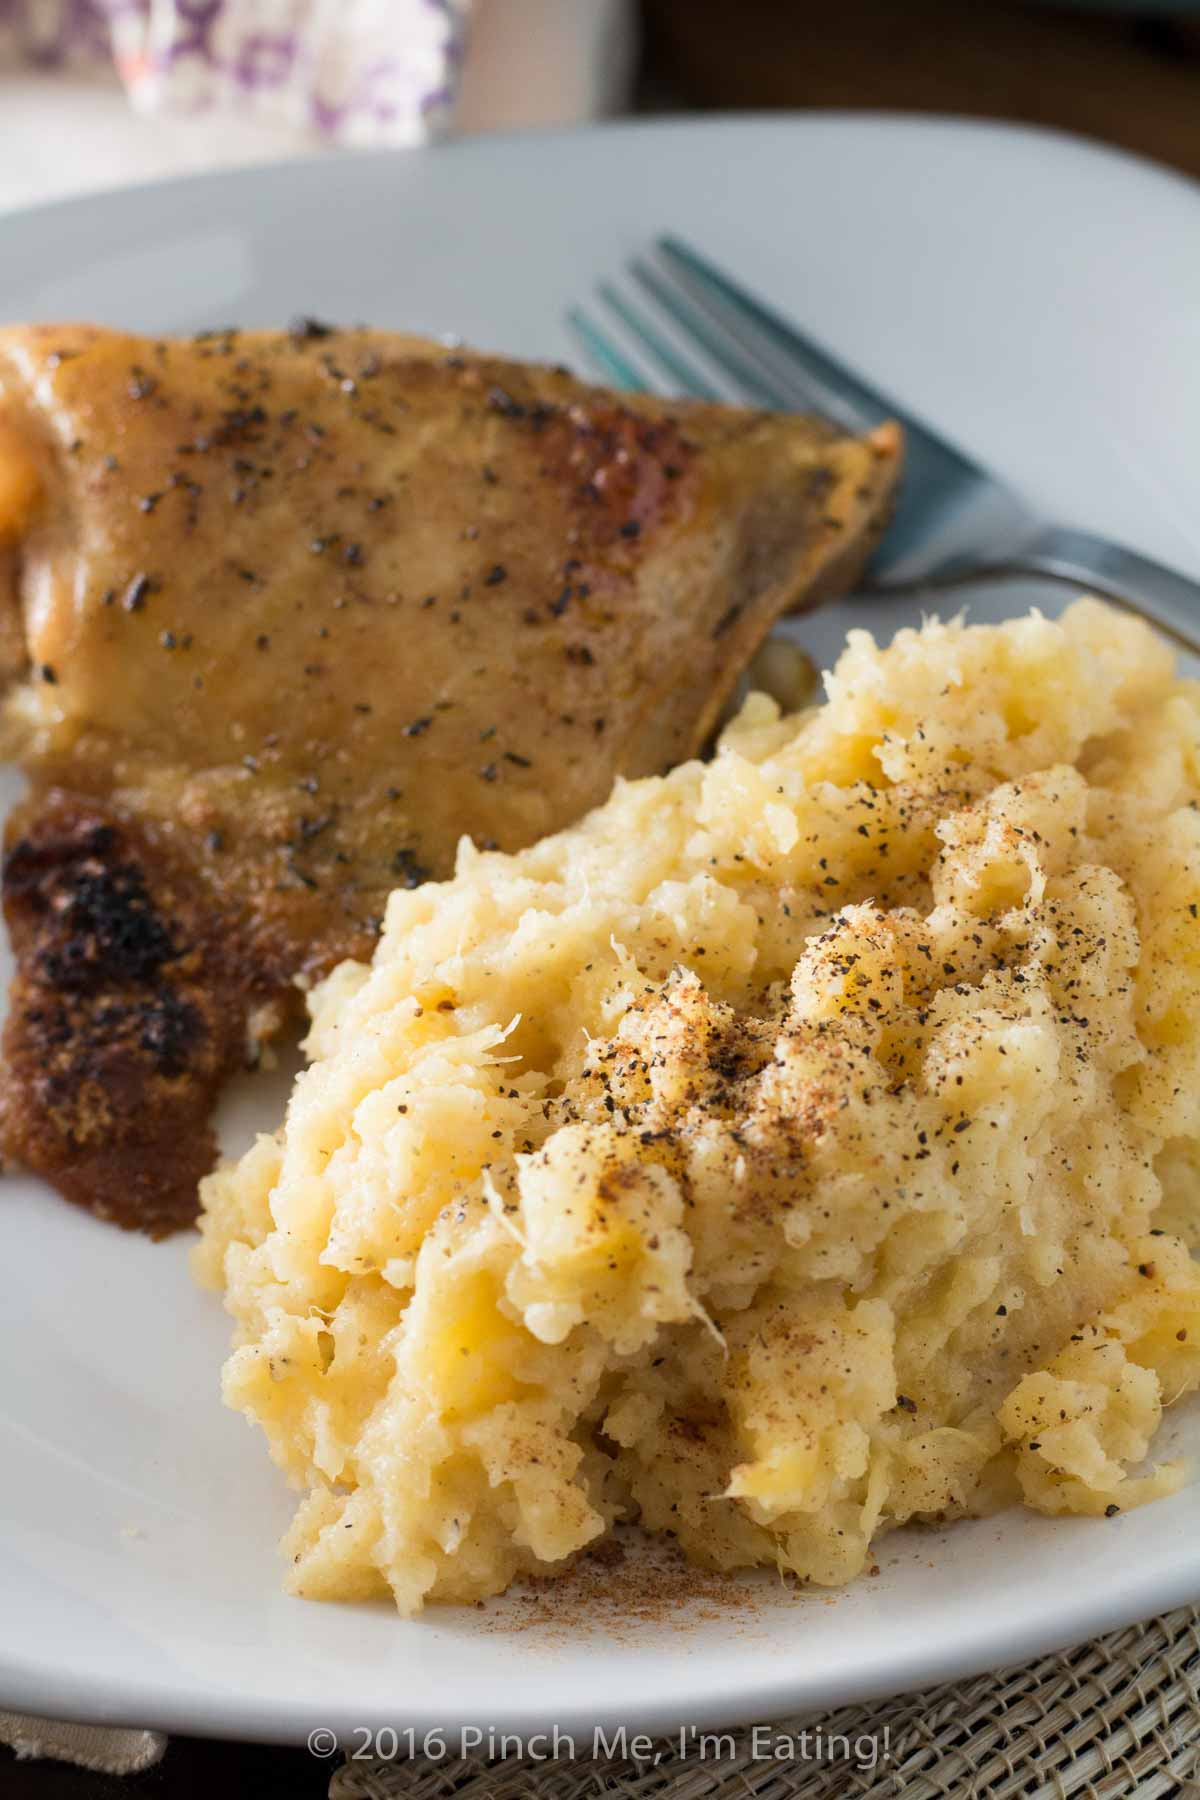 Mashed Rutabaga with Nutmeg | Pinch me, I'm eating!